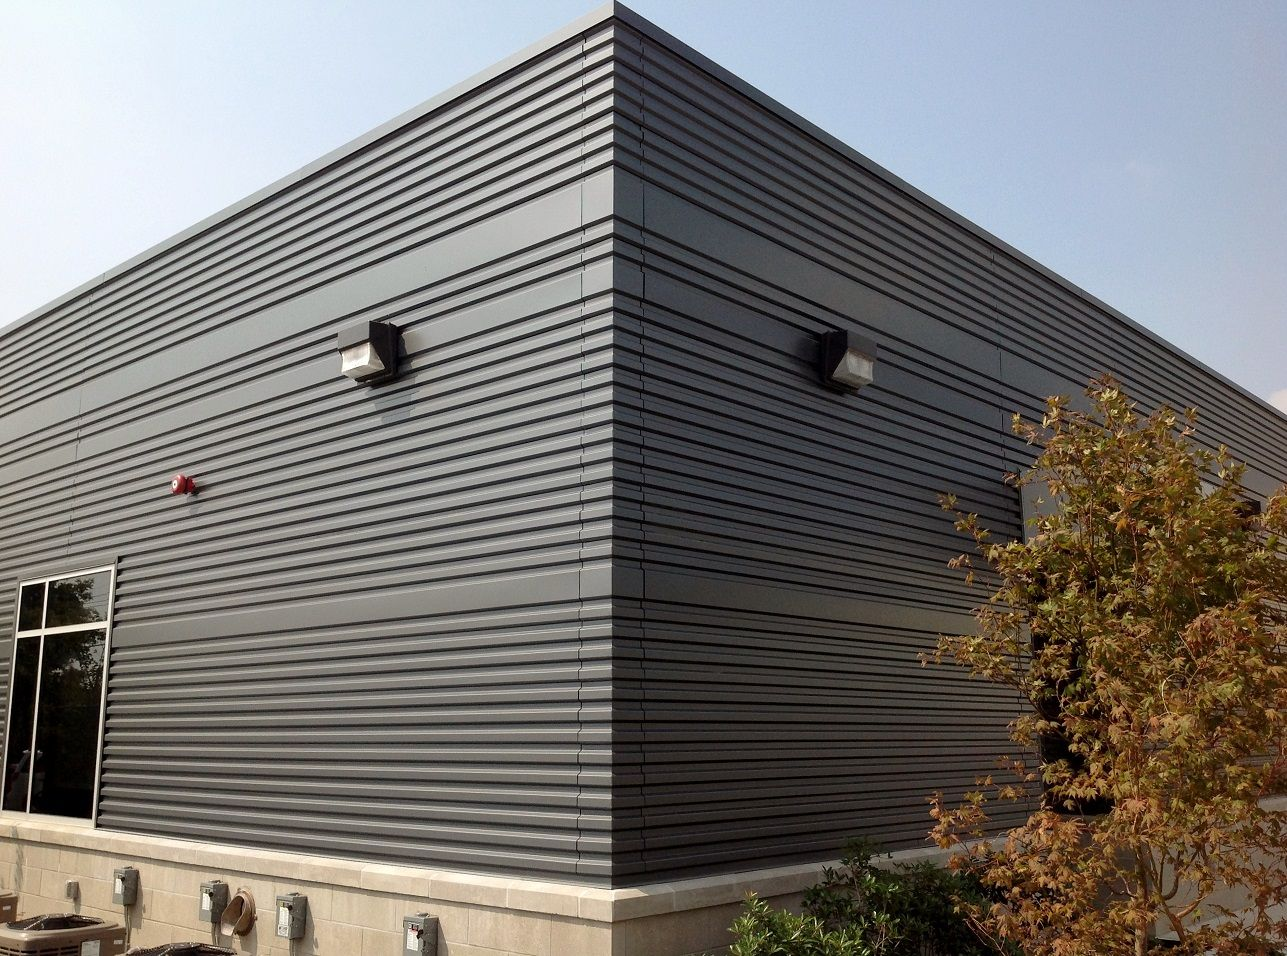 High Performance Metal Wall Panels From Imetco